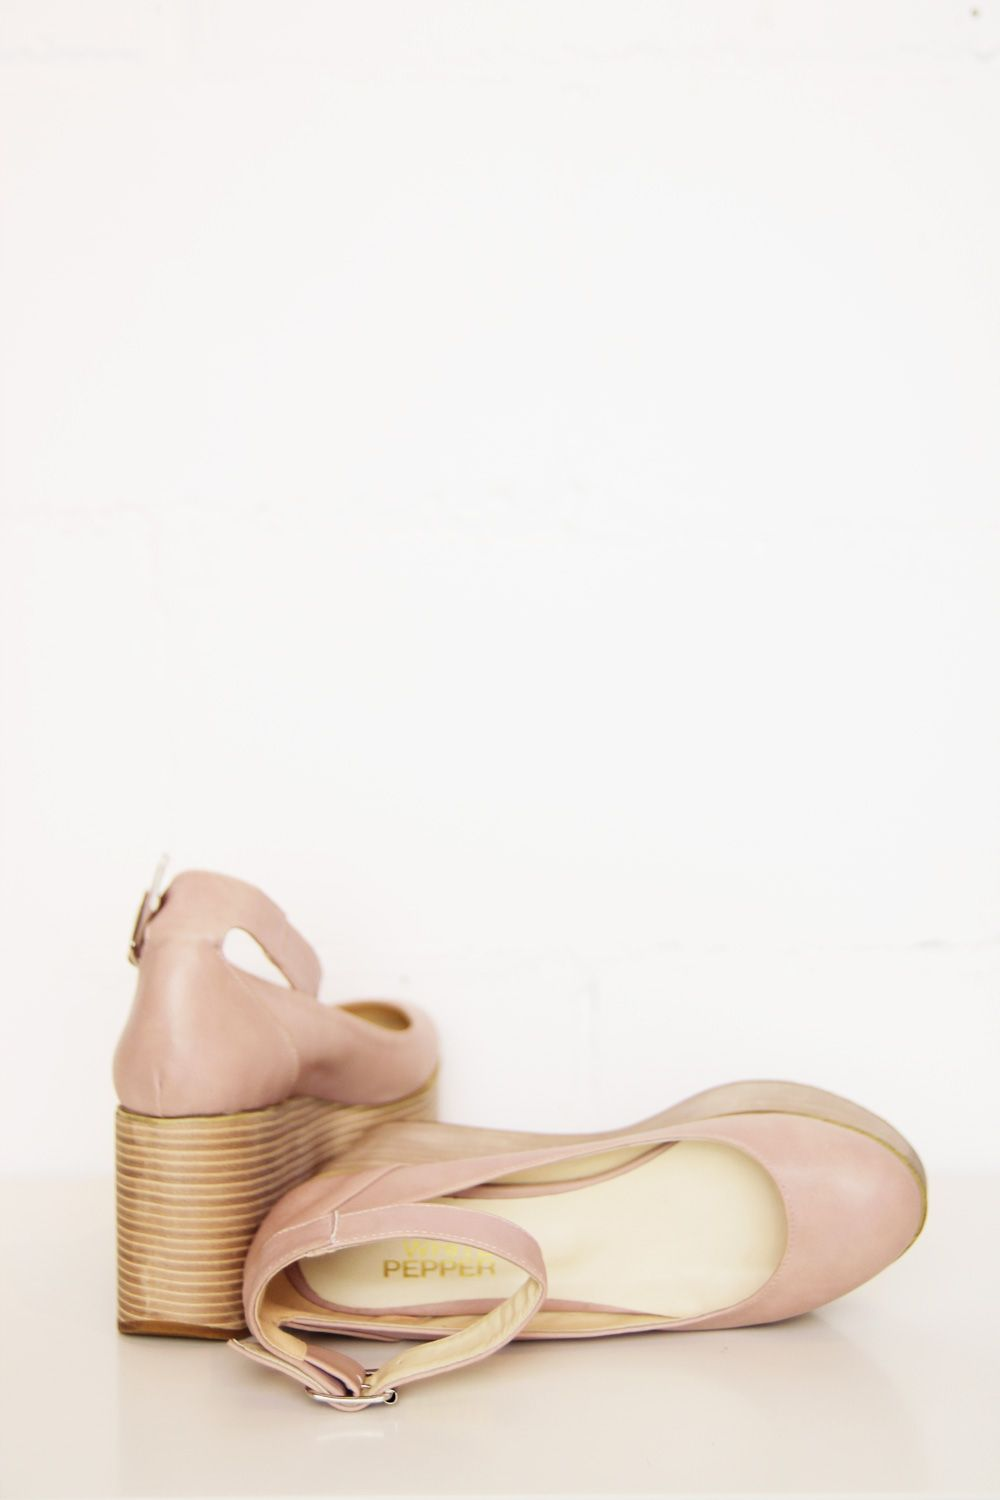 Mary-Jane Platform Wedge Pink Beige http://www.thewhitepepper.com/collections/shoes/products/mary-jane-platform-wedge-pink-beige